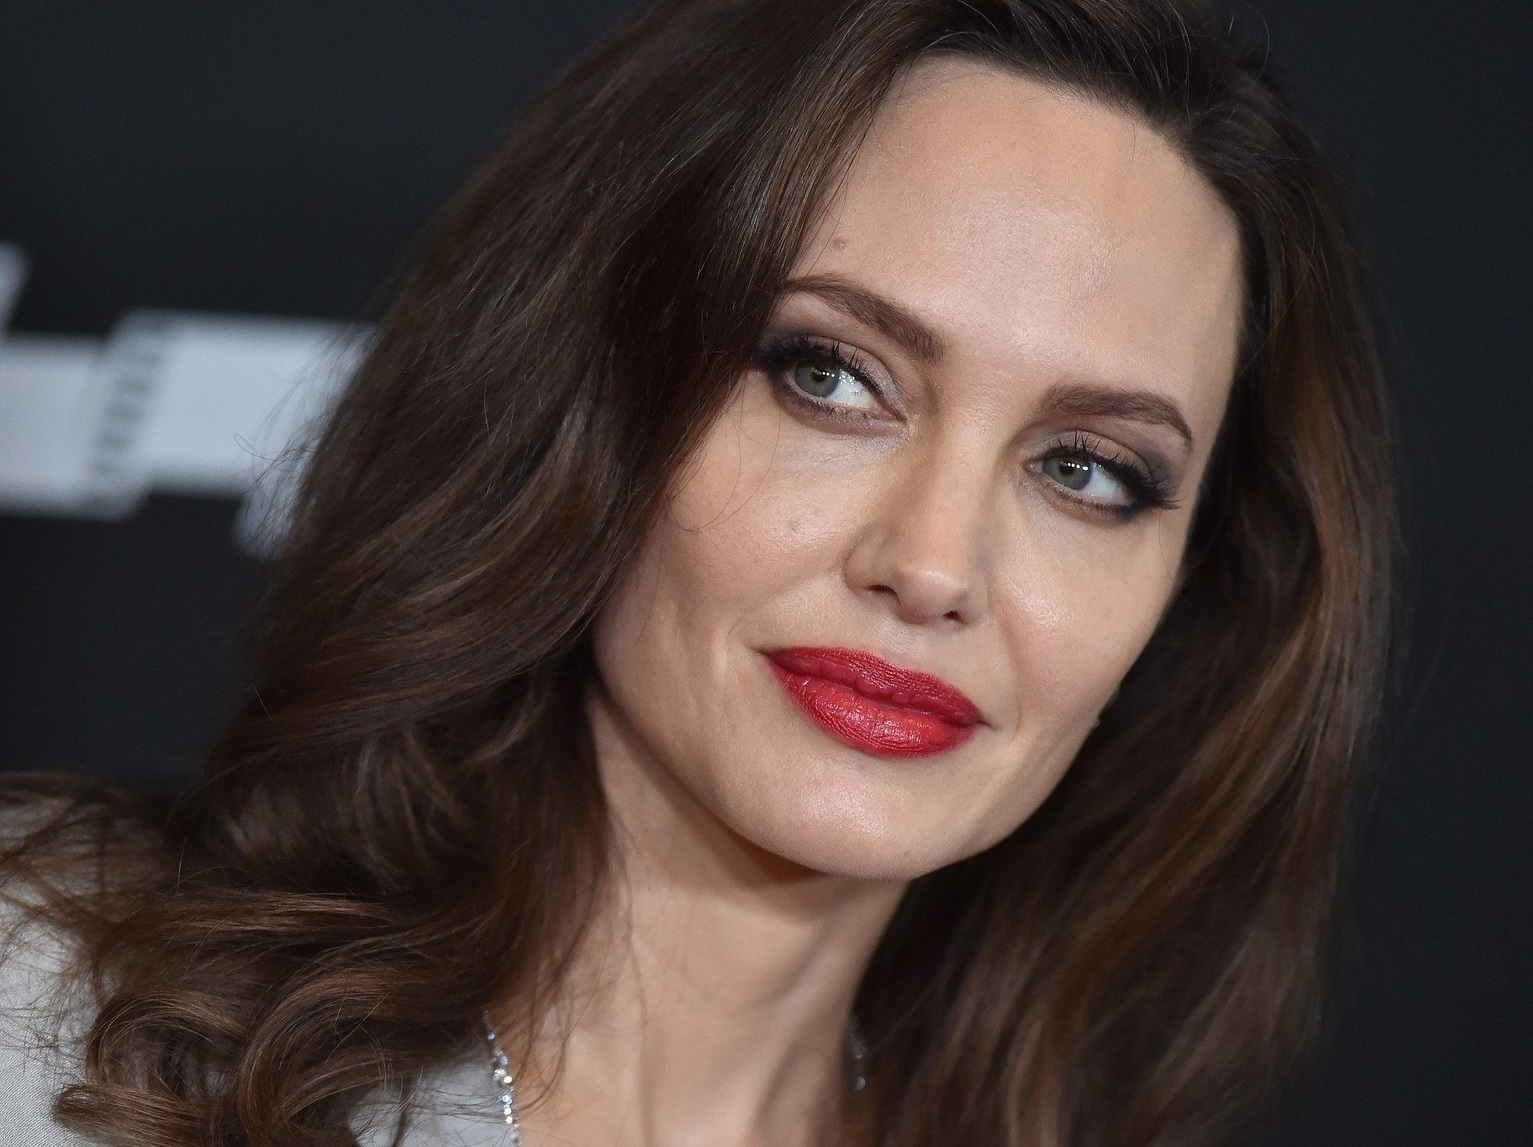 21st Annual Hollywood Film Awards. The Beverly Hilton, Beverly Hills, California. Pictured: Angelina Jolie. EVENT November 5, 2017 Job: 171105A1, Image: 354727349, License: Rights-managed, Restrictions: 000, Model Release: no, Credit line: Profimedia, Bauer Griffin